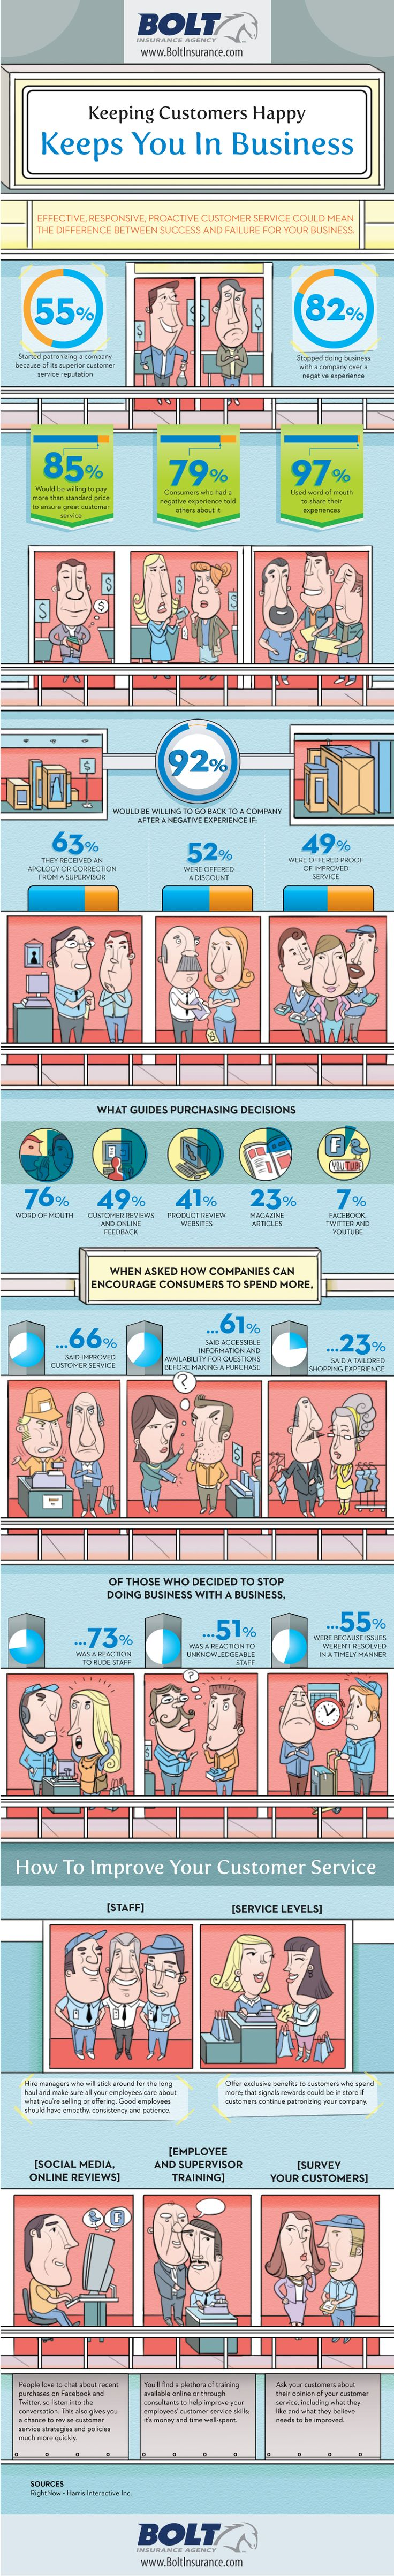 Keeping customers happy keeps you in business: here is WHY - infographic